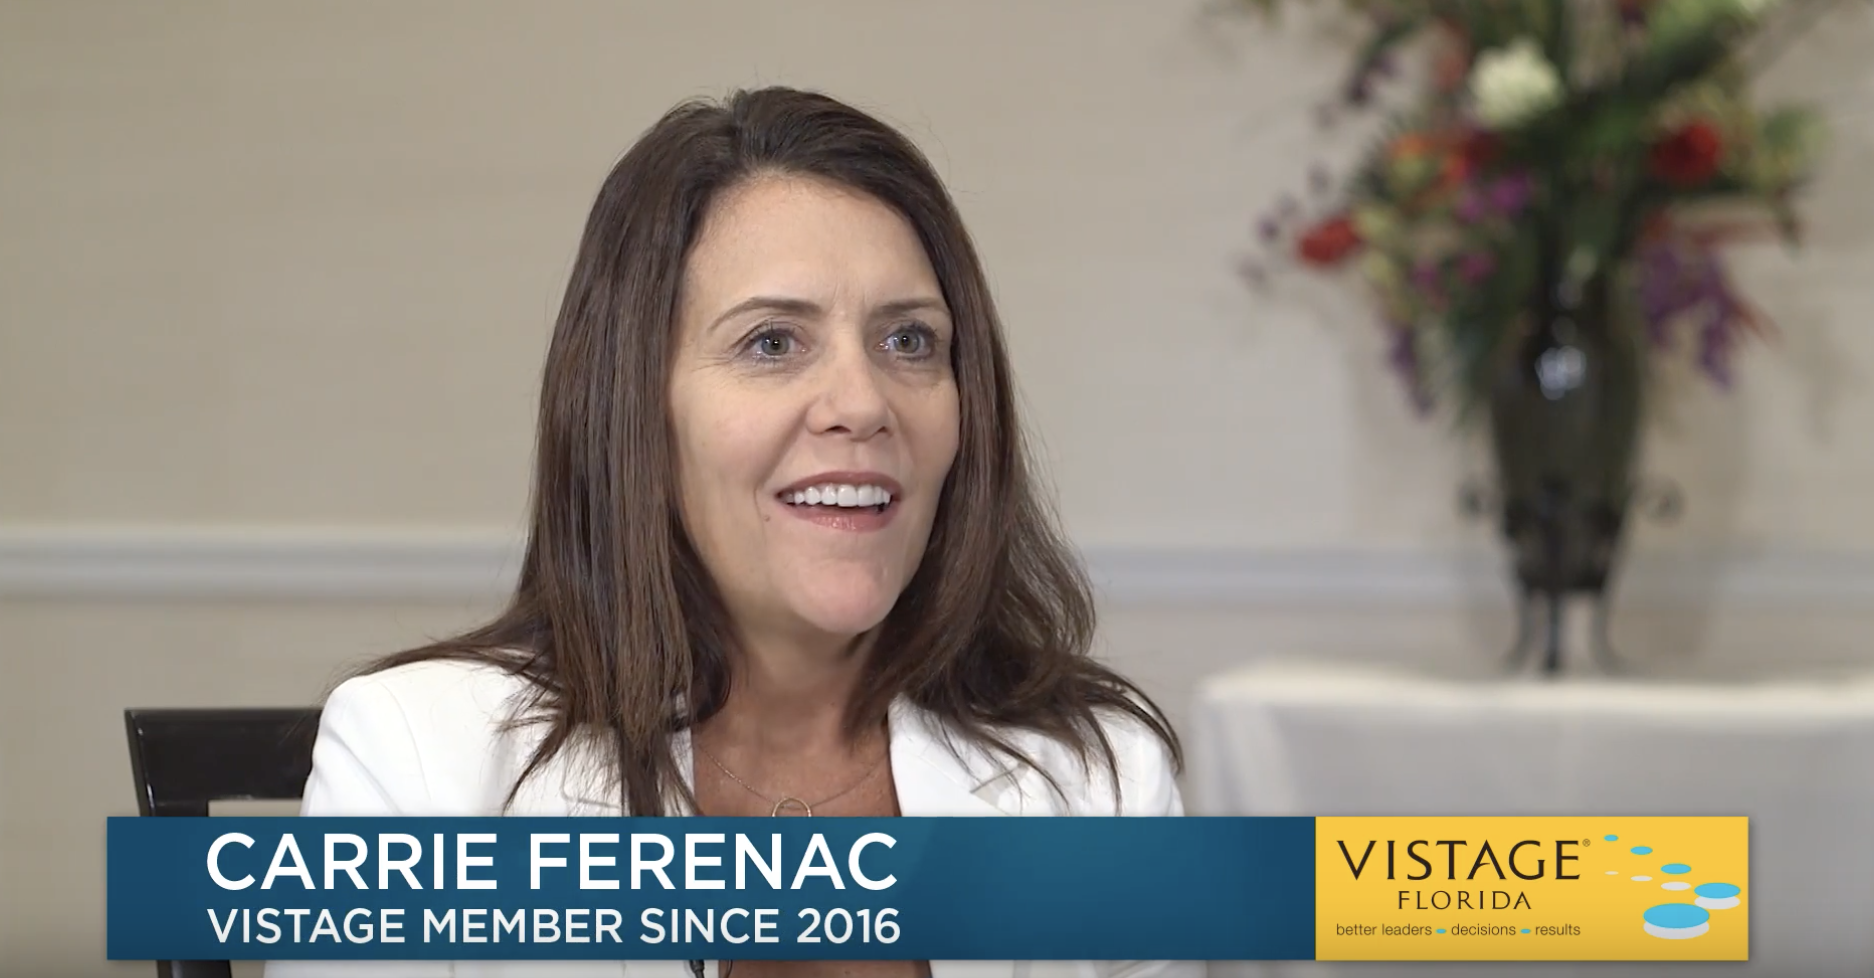 Carrie Ferenac: Vistage Holds Members Accountable